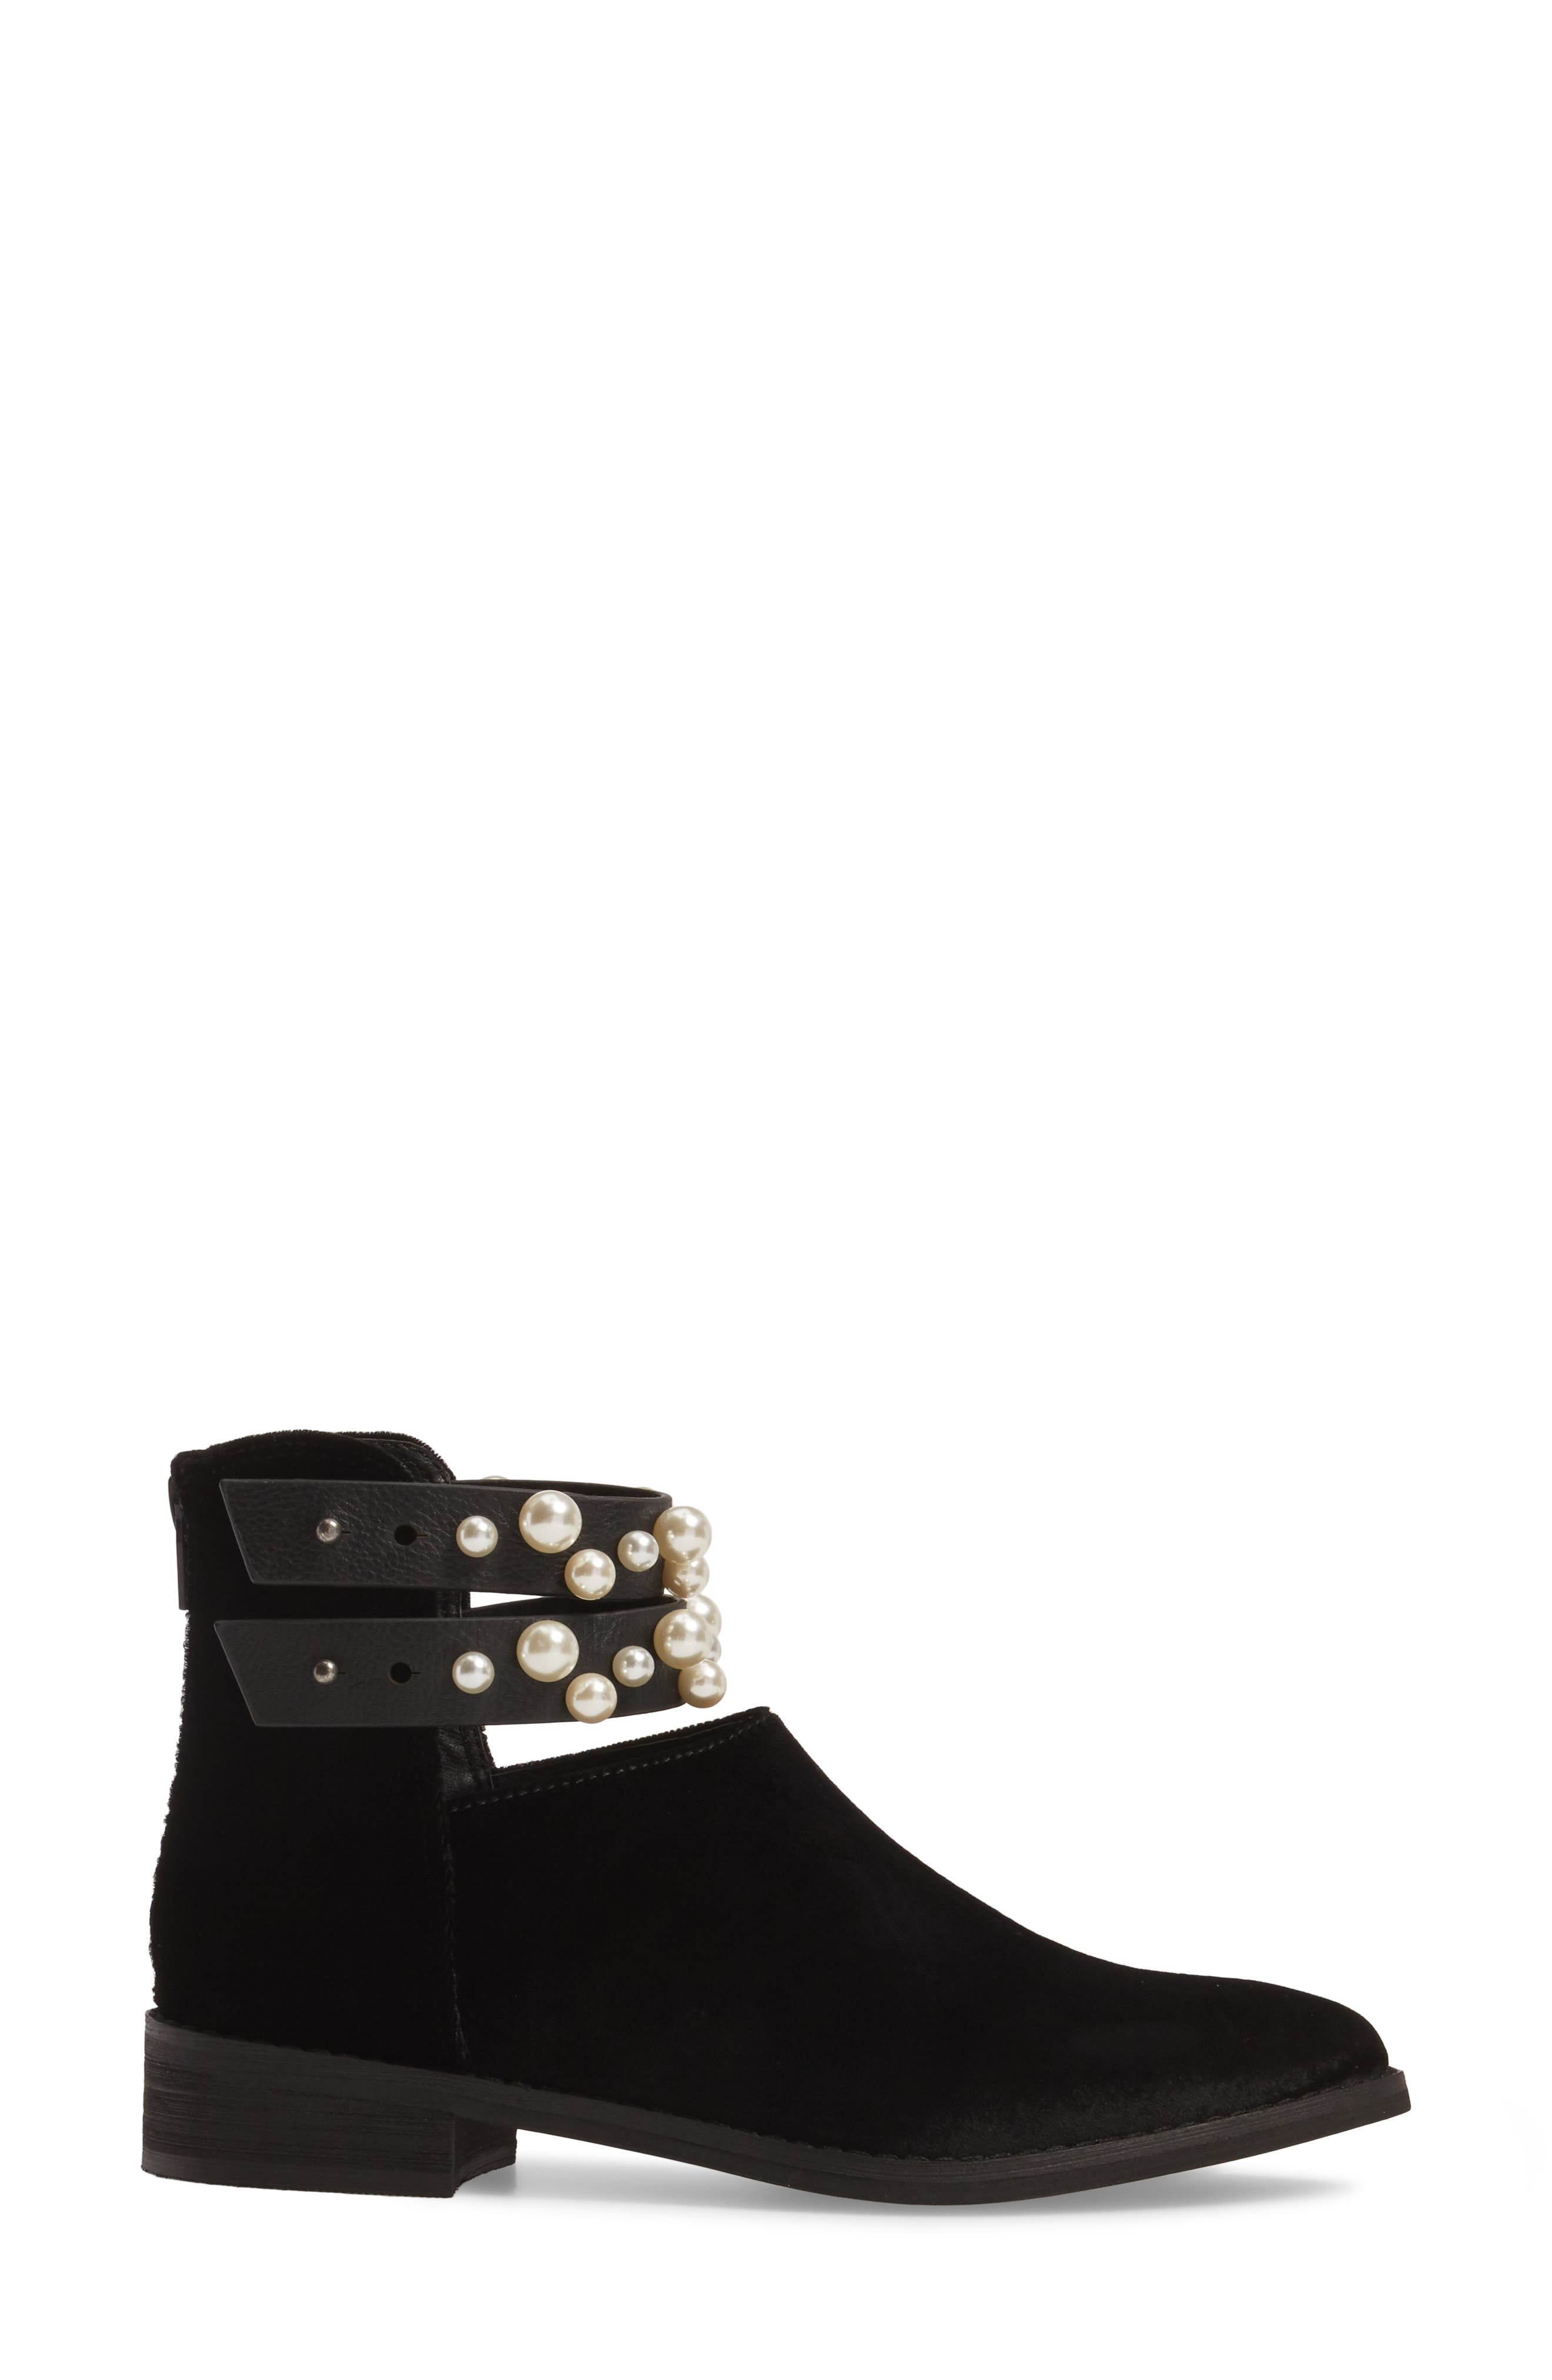 Maisie Embellished Bootie,                             Alternate thumbnail 3, color,                             001